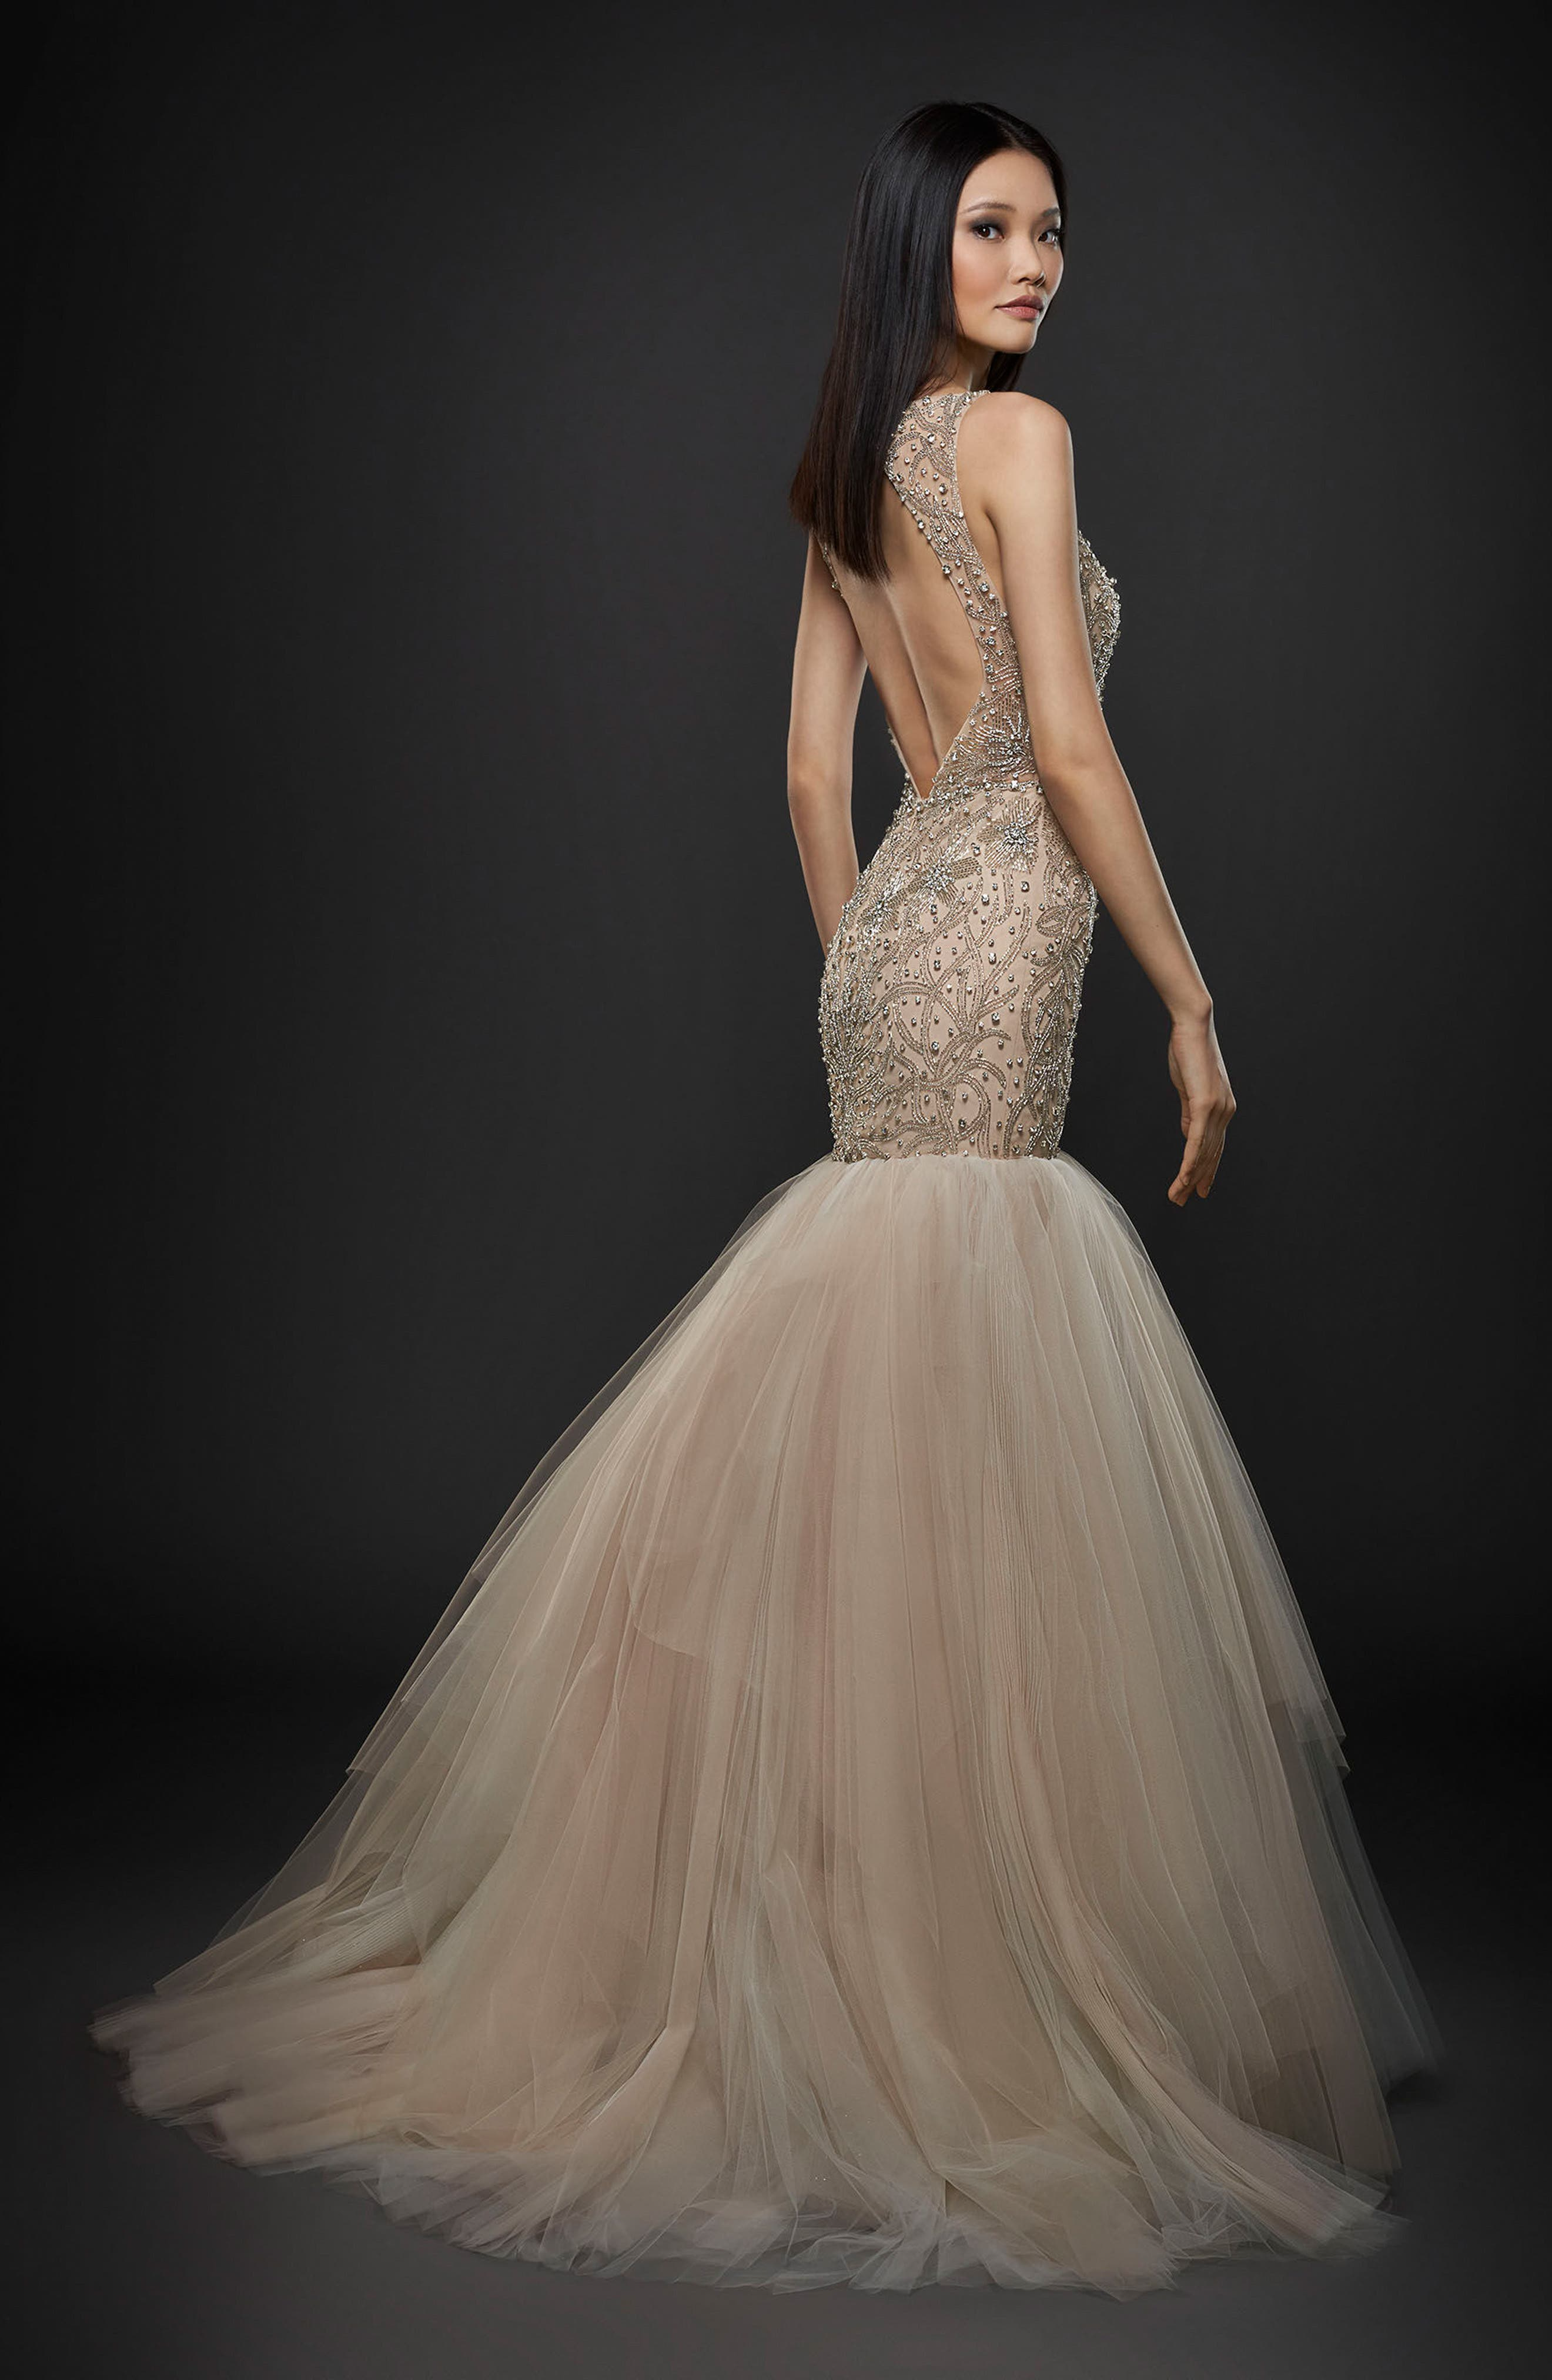 Embellished Trumpet Gown,                             Alternate thumbnail 2, color,                             Ivory/ Cashmere